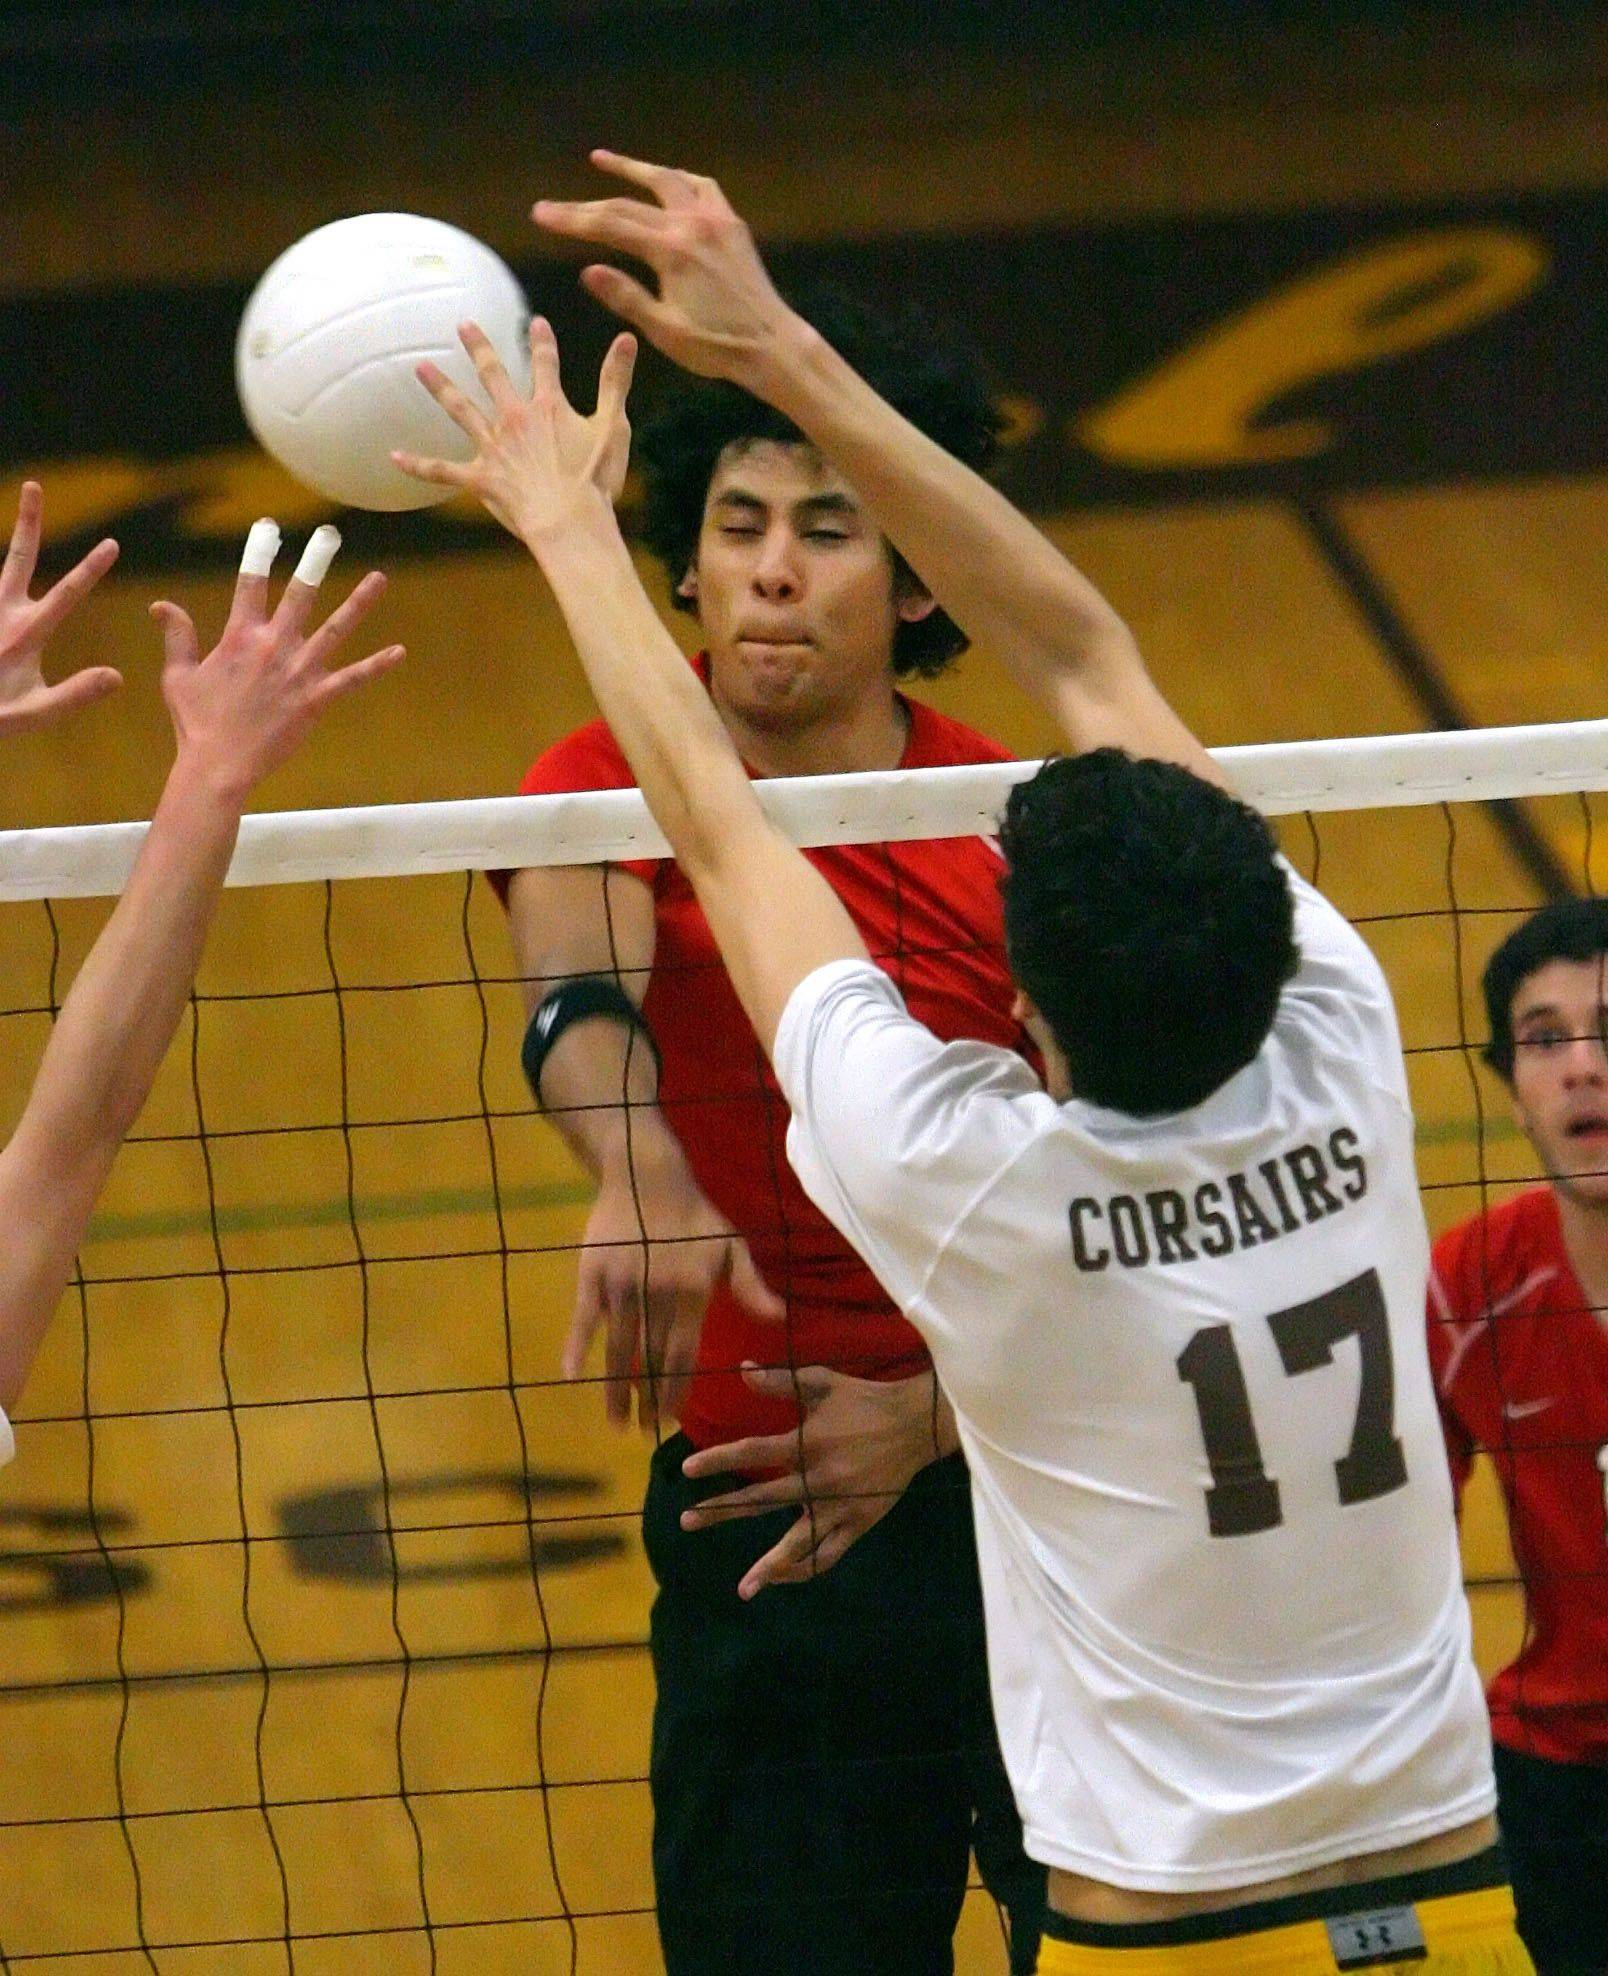 Mundelein's Jaime Jahen spikes one past Carmel's Will Collazo Monday night at Carmel High School.